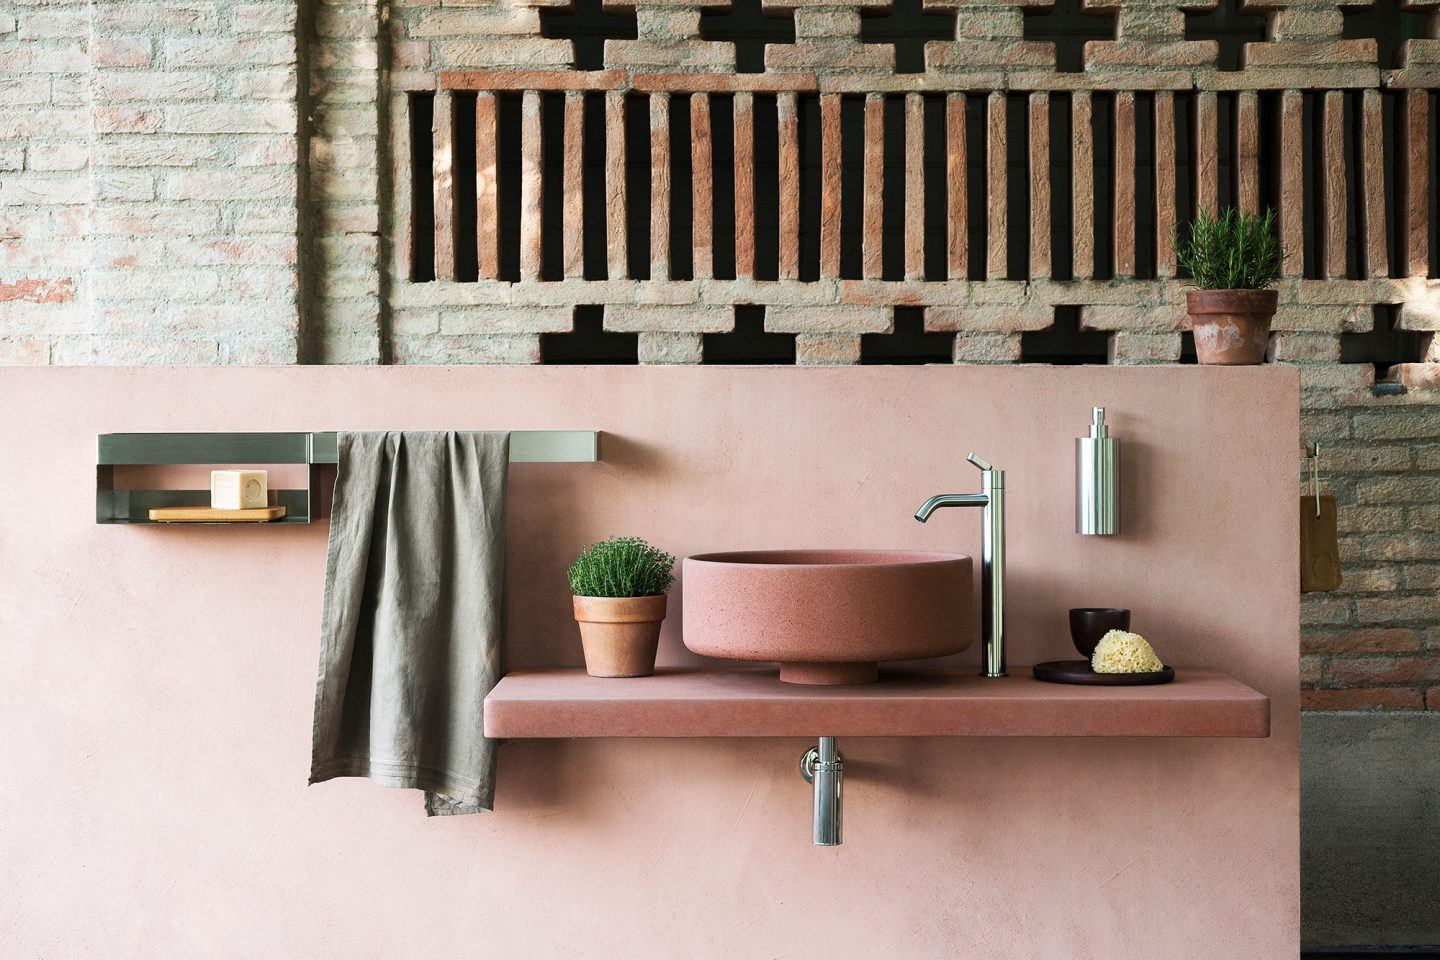 Bjhon 1 Outdoor | <strong>BJHON 1 OUTDOOR</strong> | manufacturer <strong>Agape</strong> | project <strong>Angelo Mangiarotti</strong> | ph © <strong>Andrea Ferrari</strong>